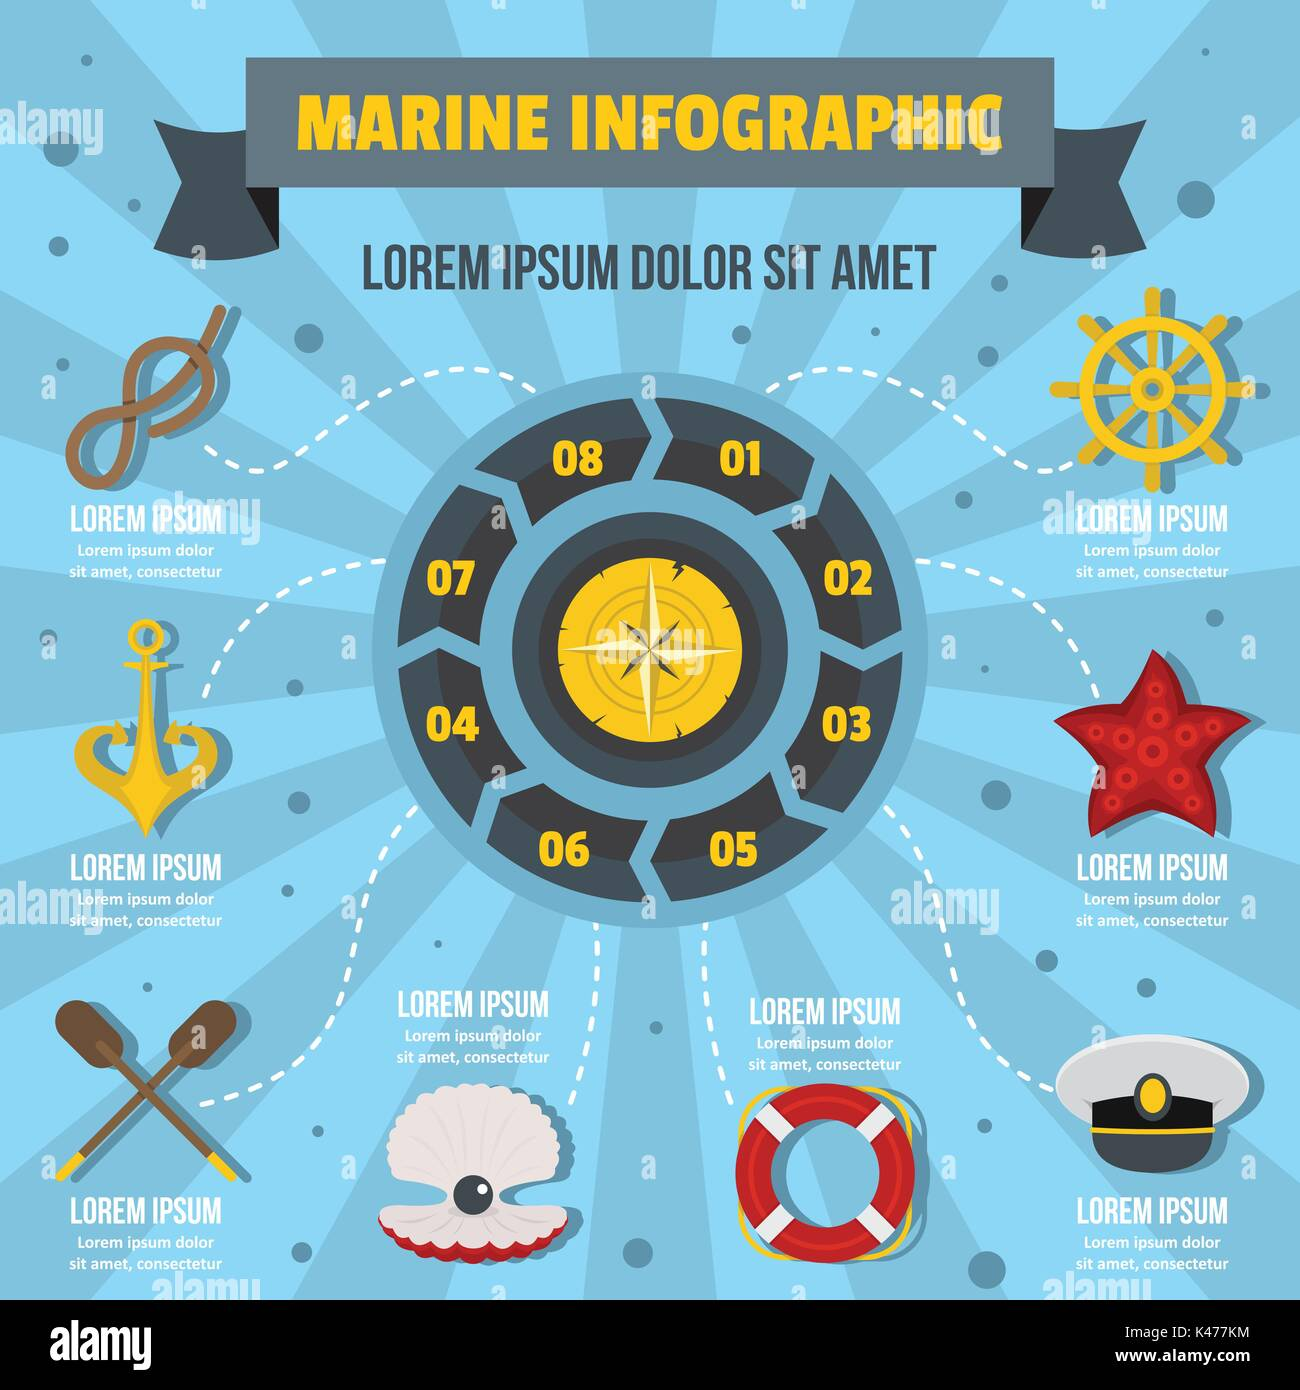 Marine infographic concept, flat style - Stock Vector